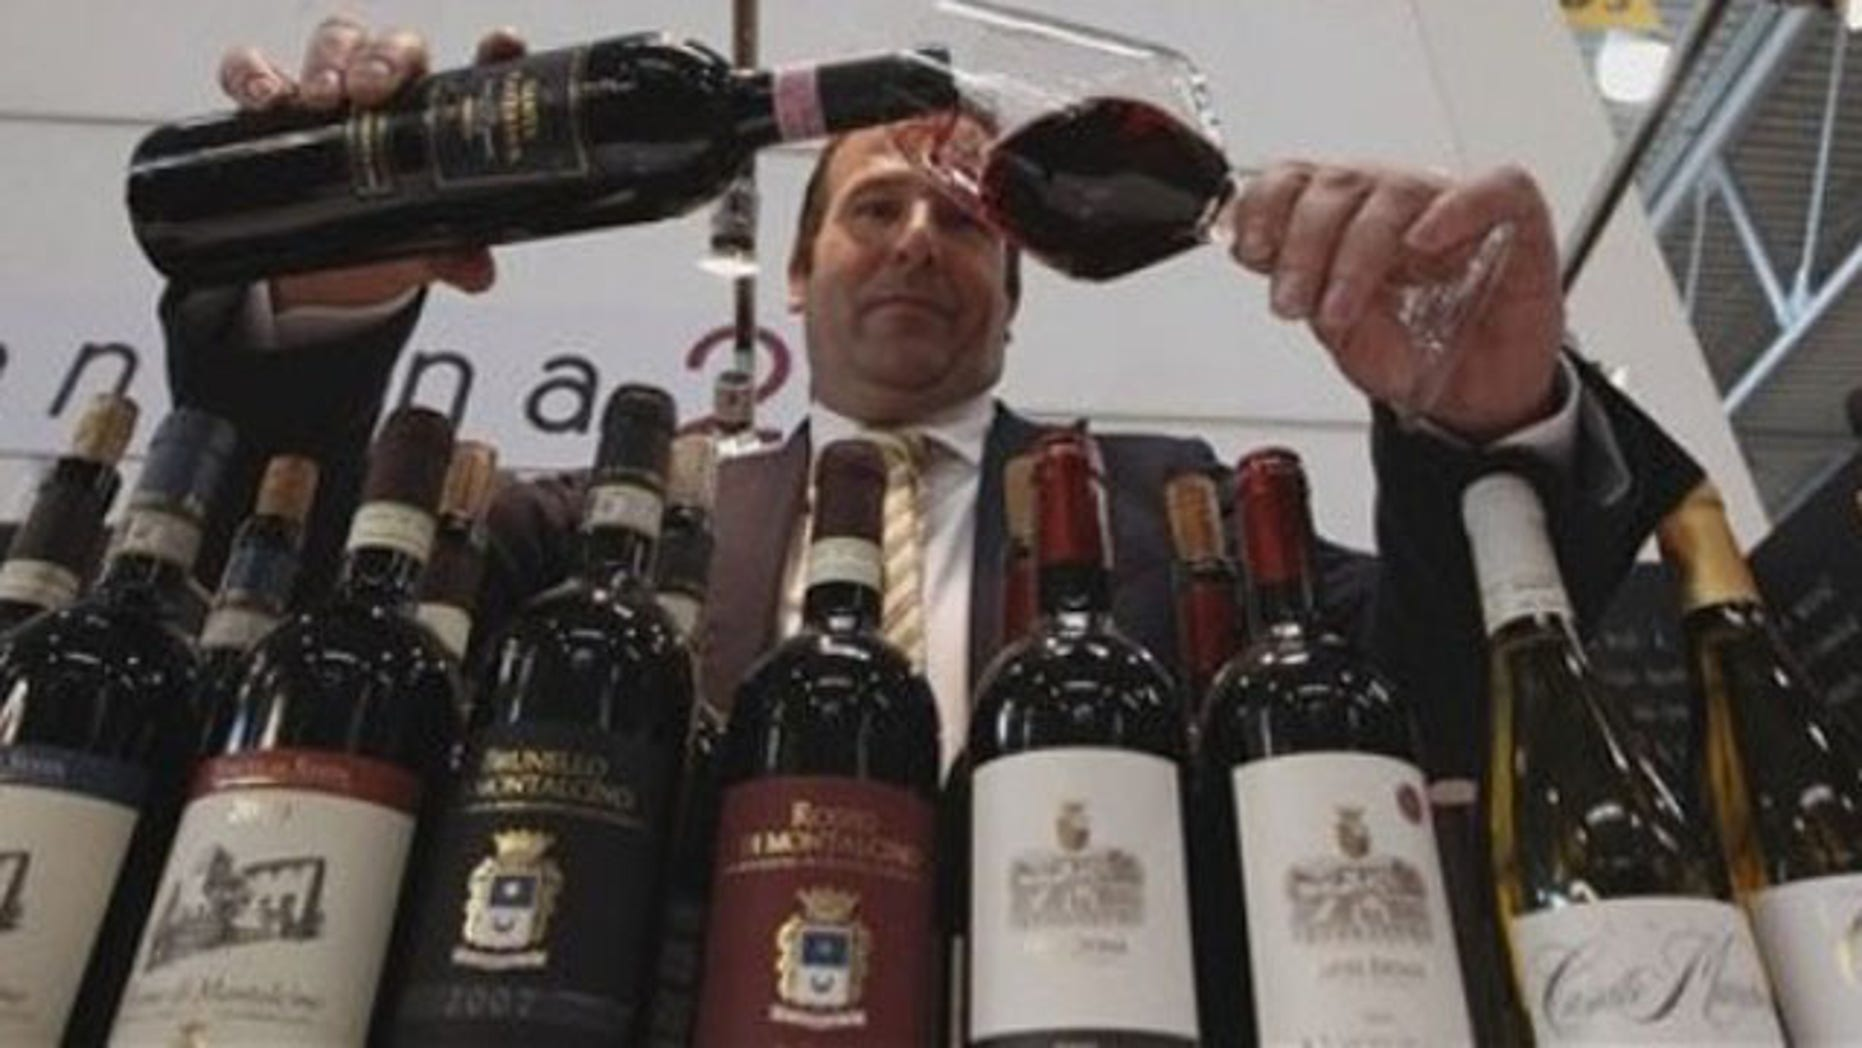 """A man pours a glass of Tuscany red wine during the 46th edition of the annual International Wine and Spirits Exhibition """"Vinitaly"""", in Verona, northern Italy, Monday, March 26, 2012. The wine exhibition runs until March 28.  (AP Photo/Luca Bruno)"""